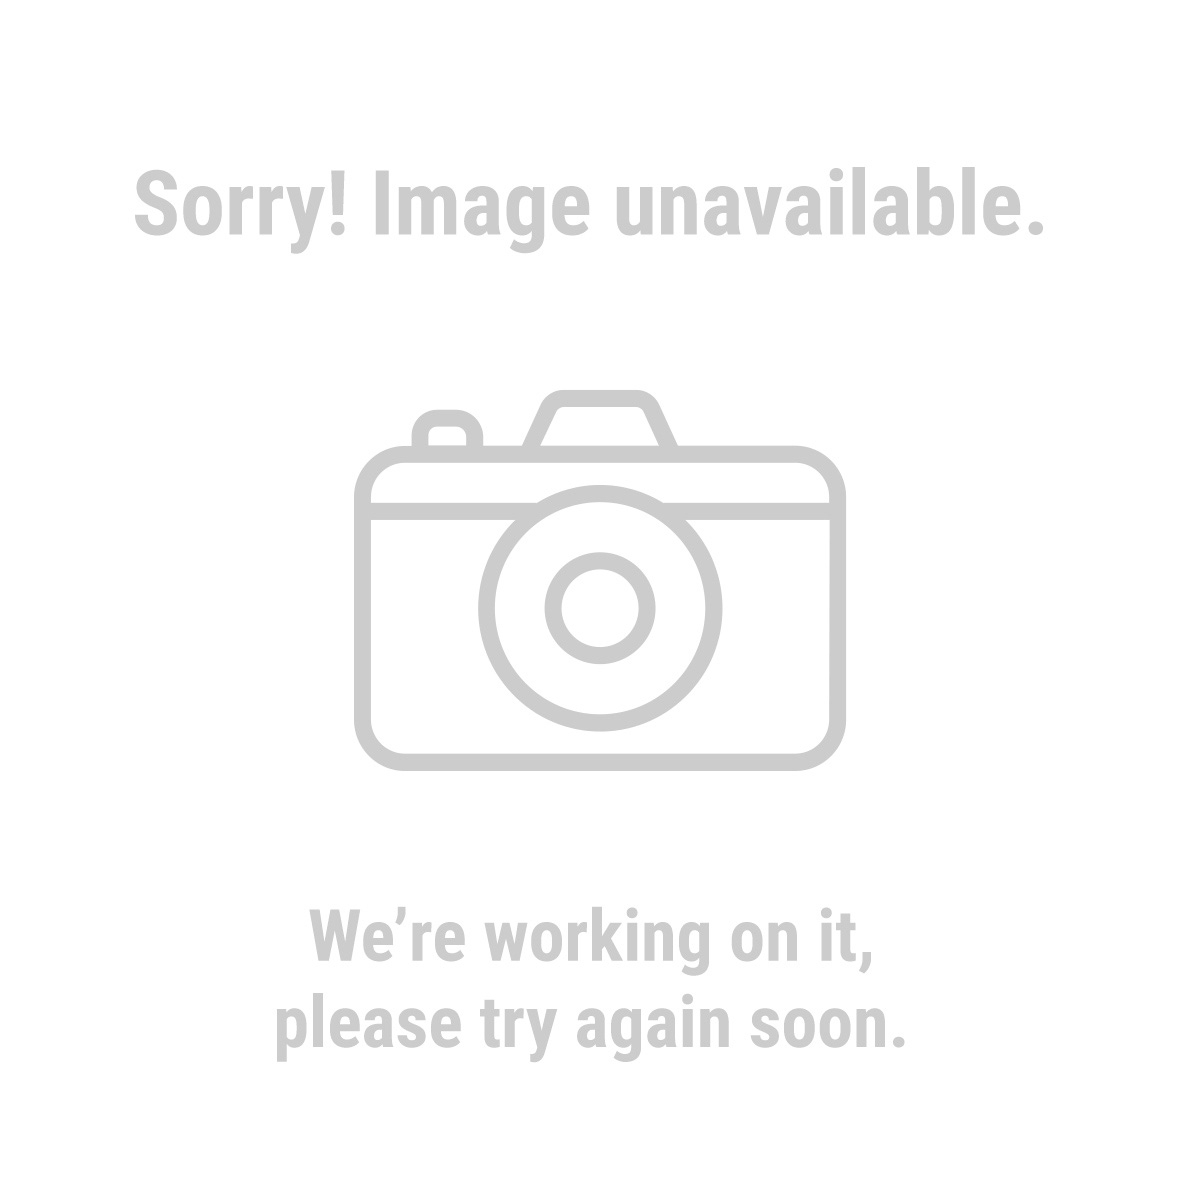 HFT 69192 25 ft. x 53 ft. 8 in. All Purpose Weather Resistant Tarp